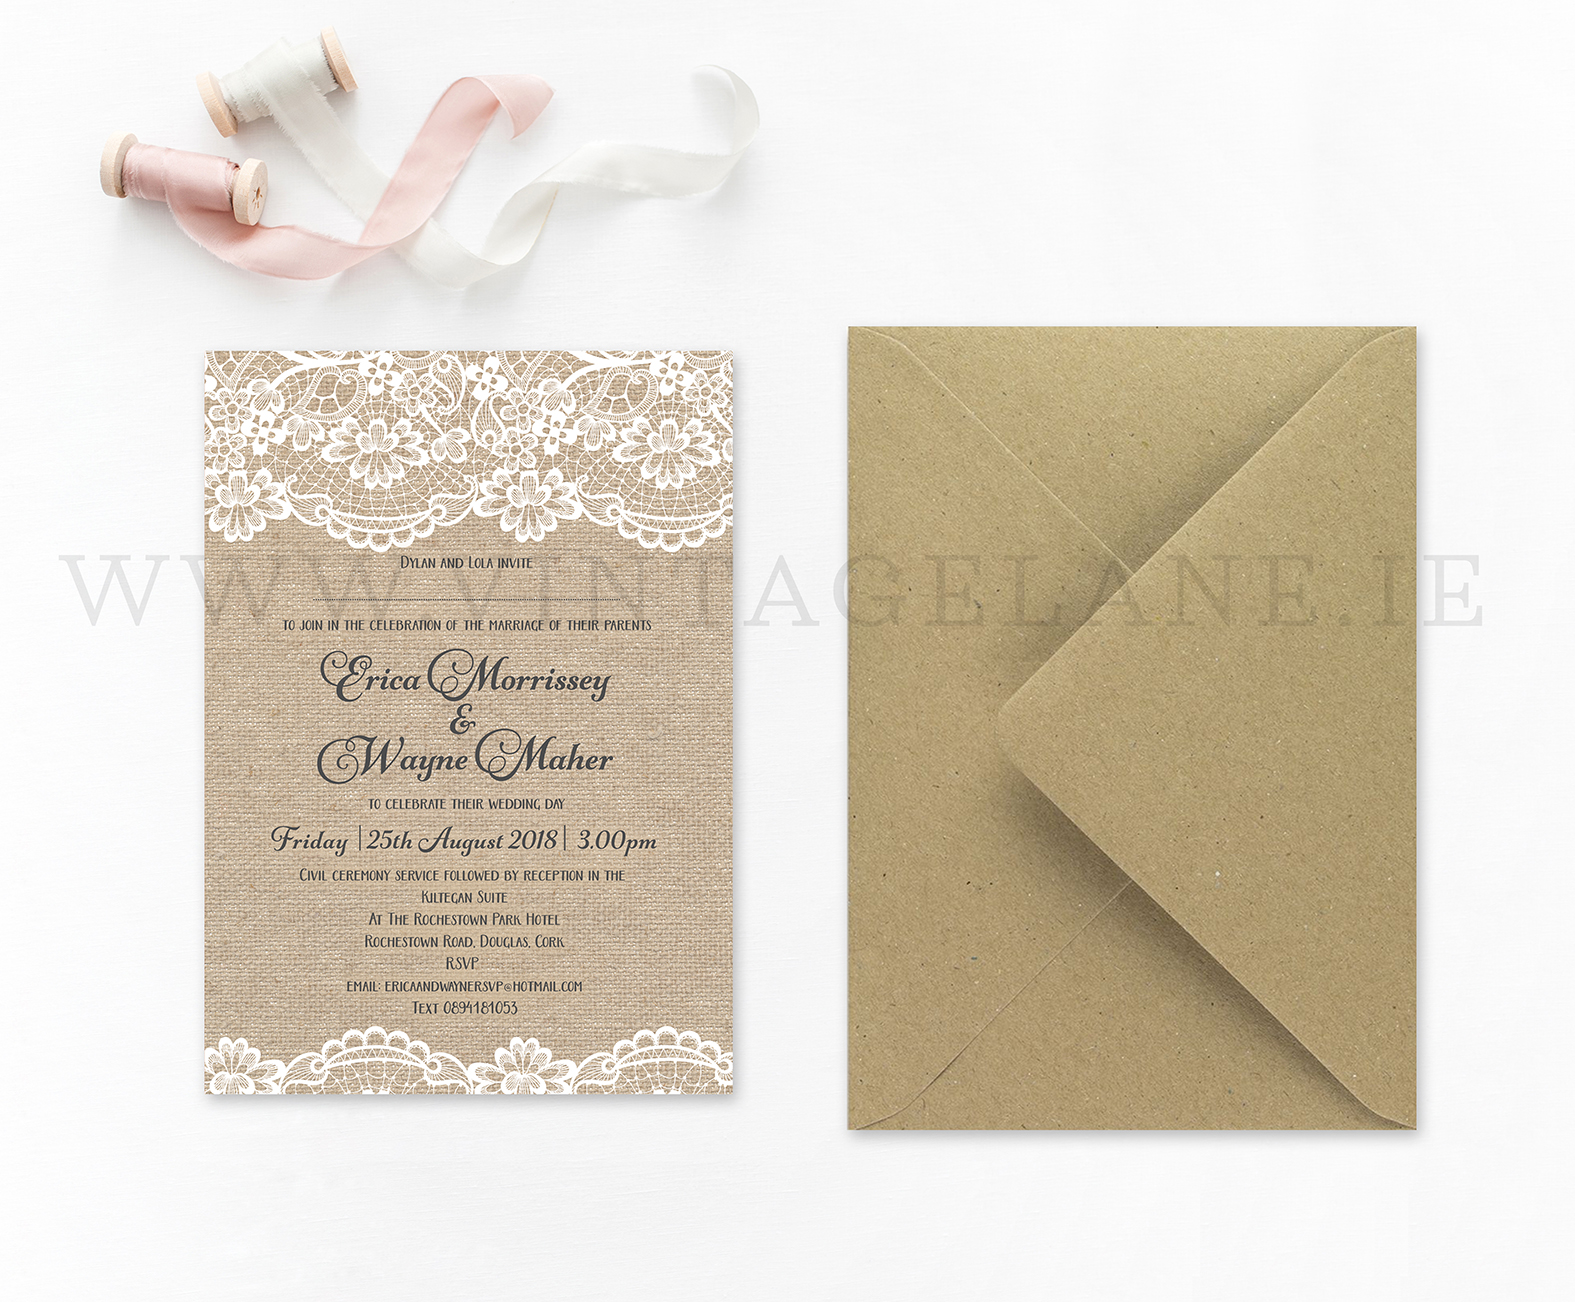 Burlap style wedding invitations Ireland cork barn style wedding